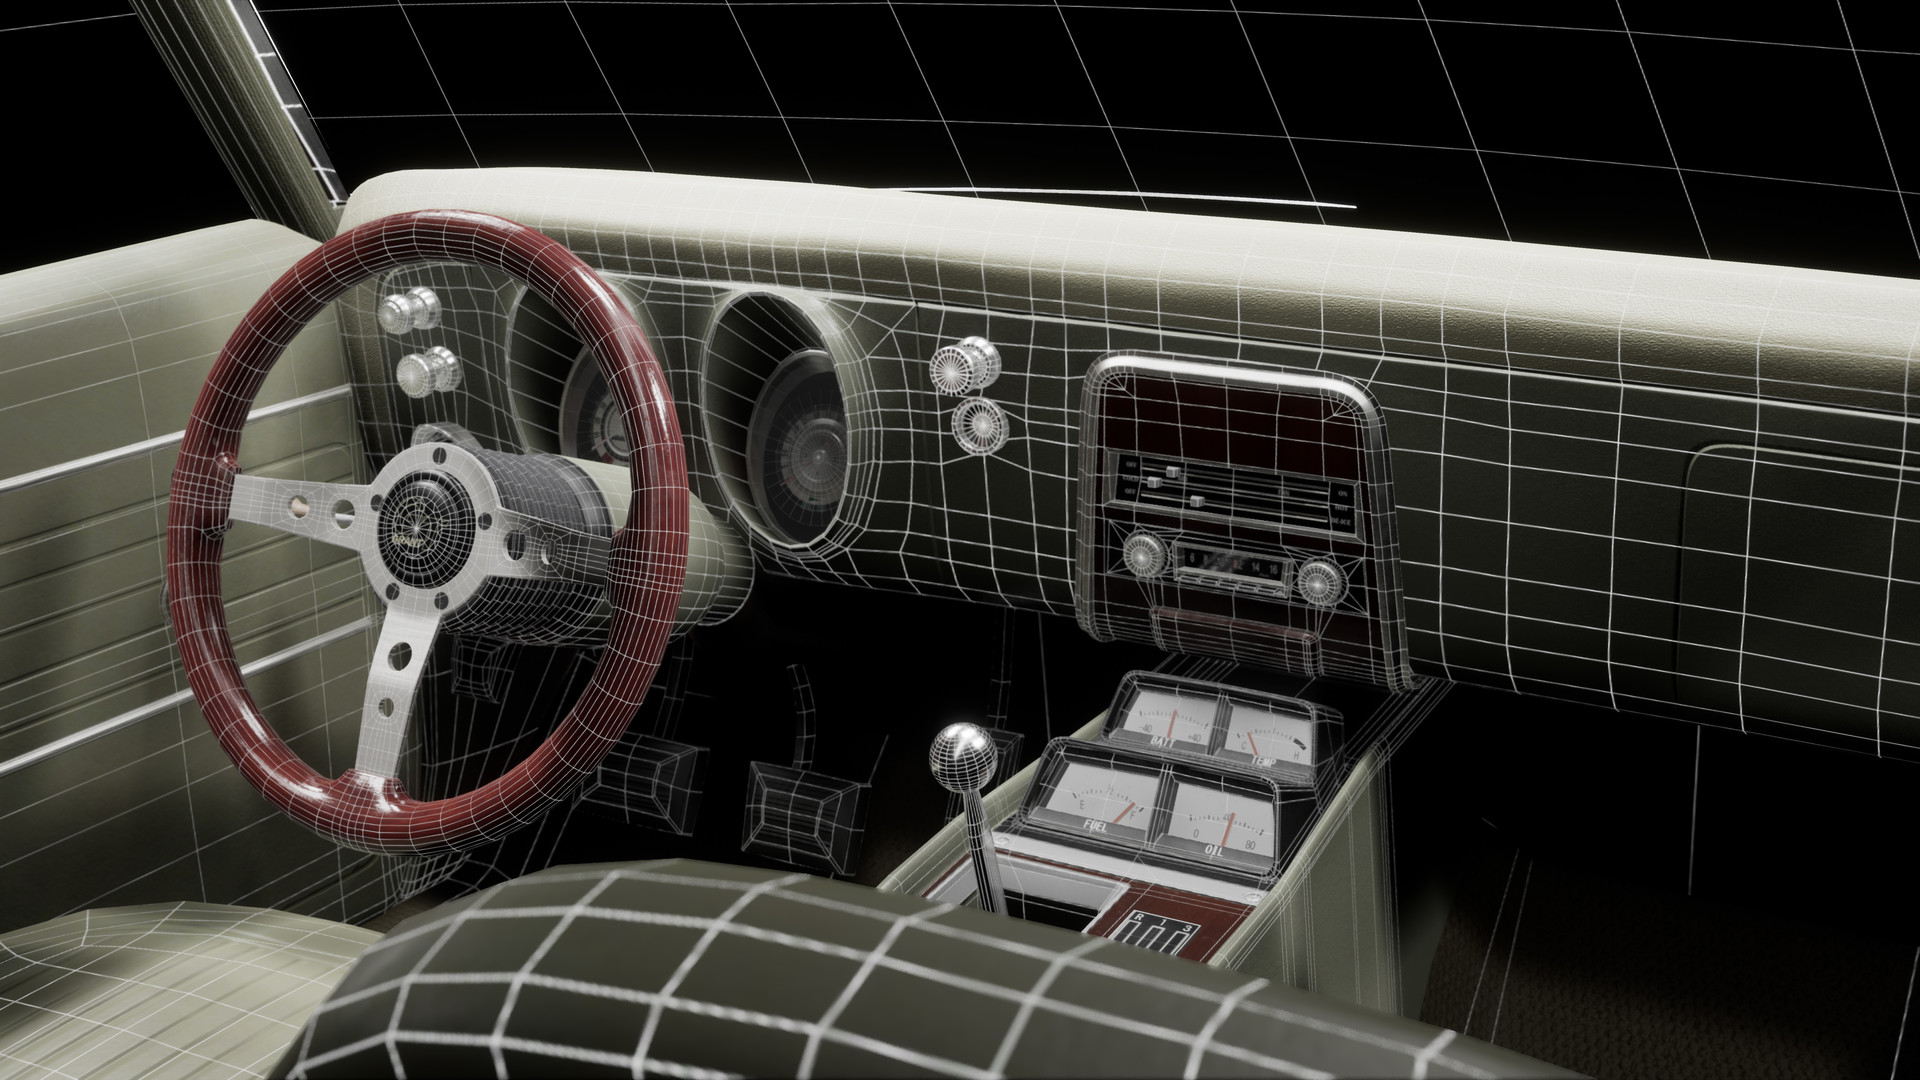 Steven m turner interior wireframe 4